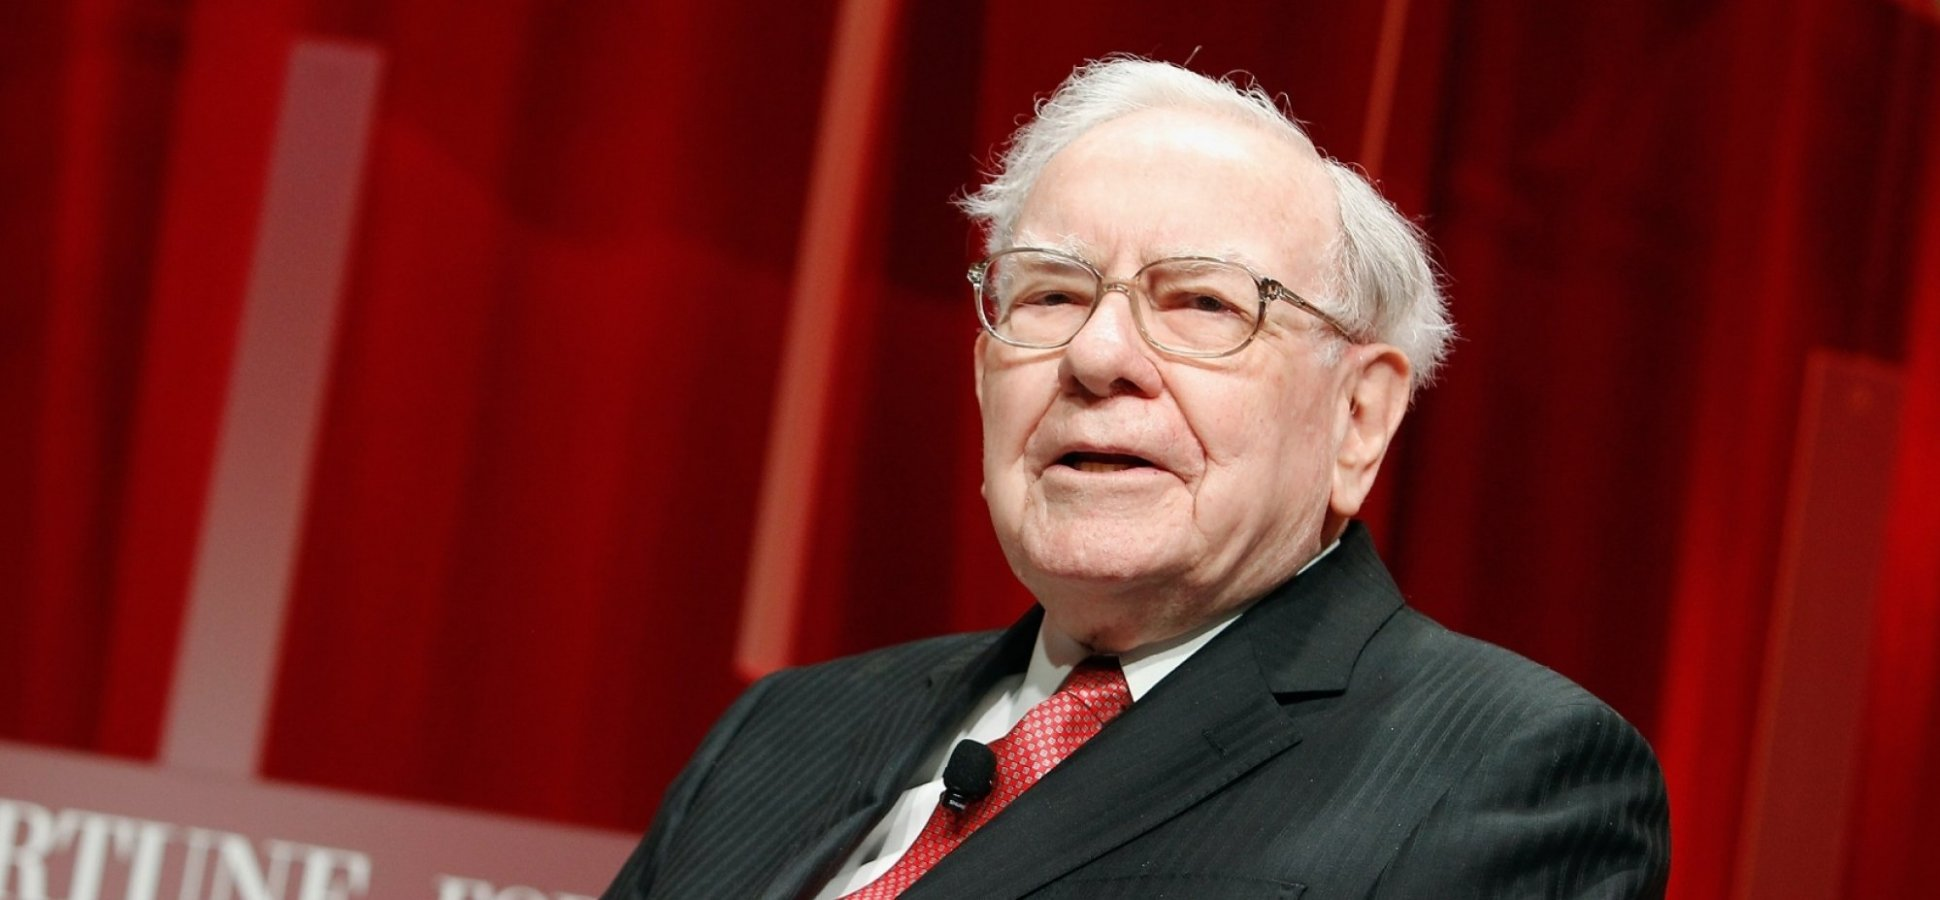 Warren Buffett Once Shared This Priceless Advice to Keep People From Making Dumb Mistakes